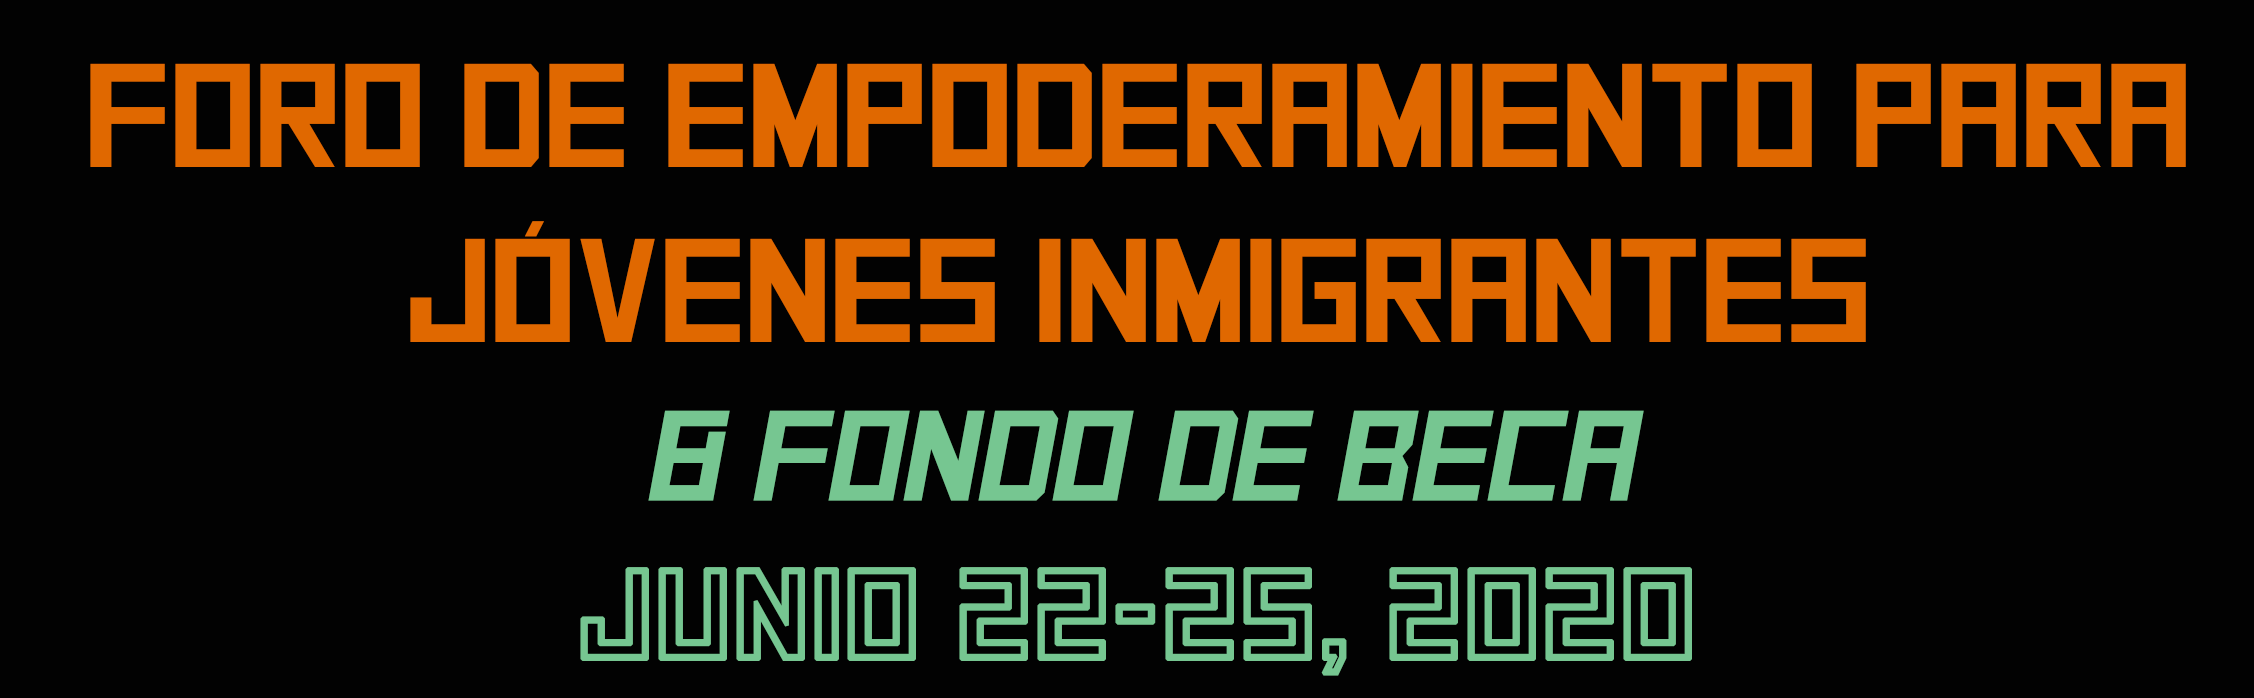 immigrant youth forum header in spanish